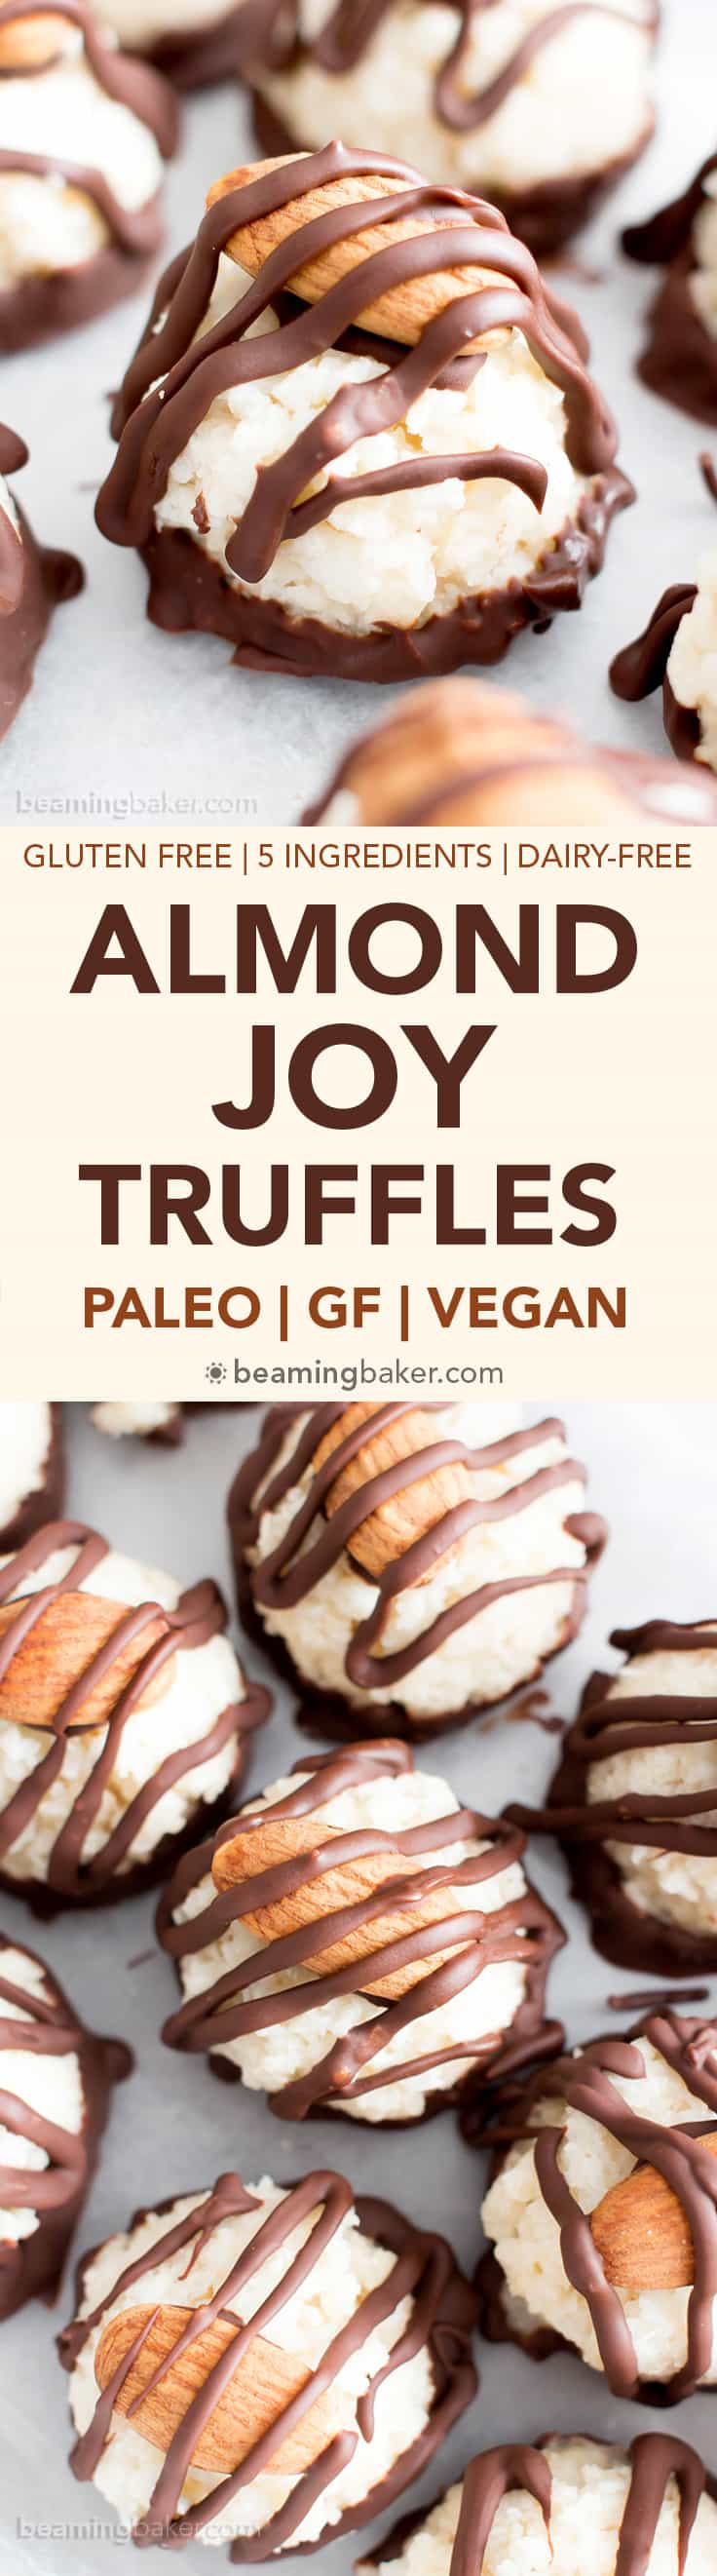 Paleo Vegan Almond Joy Truffles (V, GF): a fun recipe for homemade candy truffles that taste just like Almond Joy! #Vegan #GlutenFree #Paleo #Candy #Dessert | Recipe on BeamingBaker.com